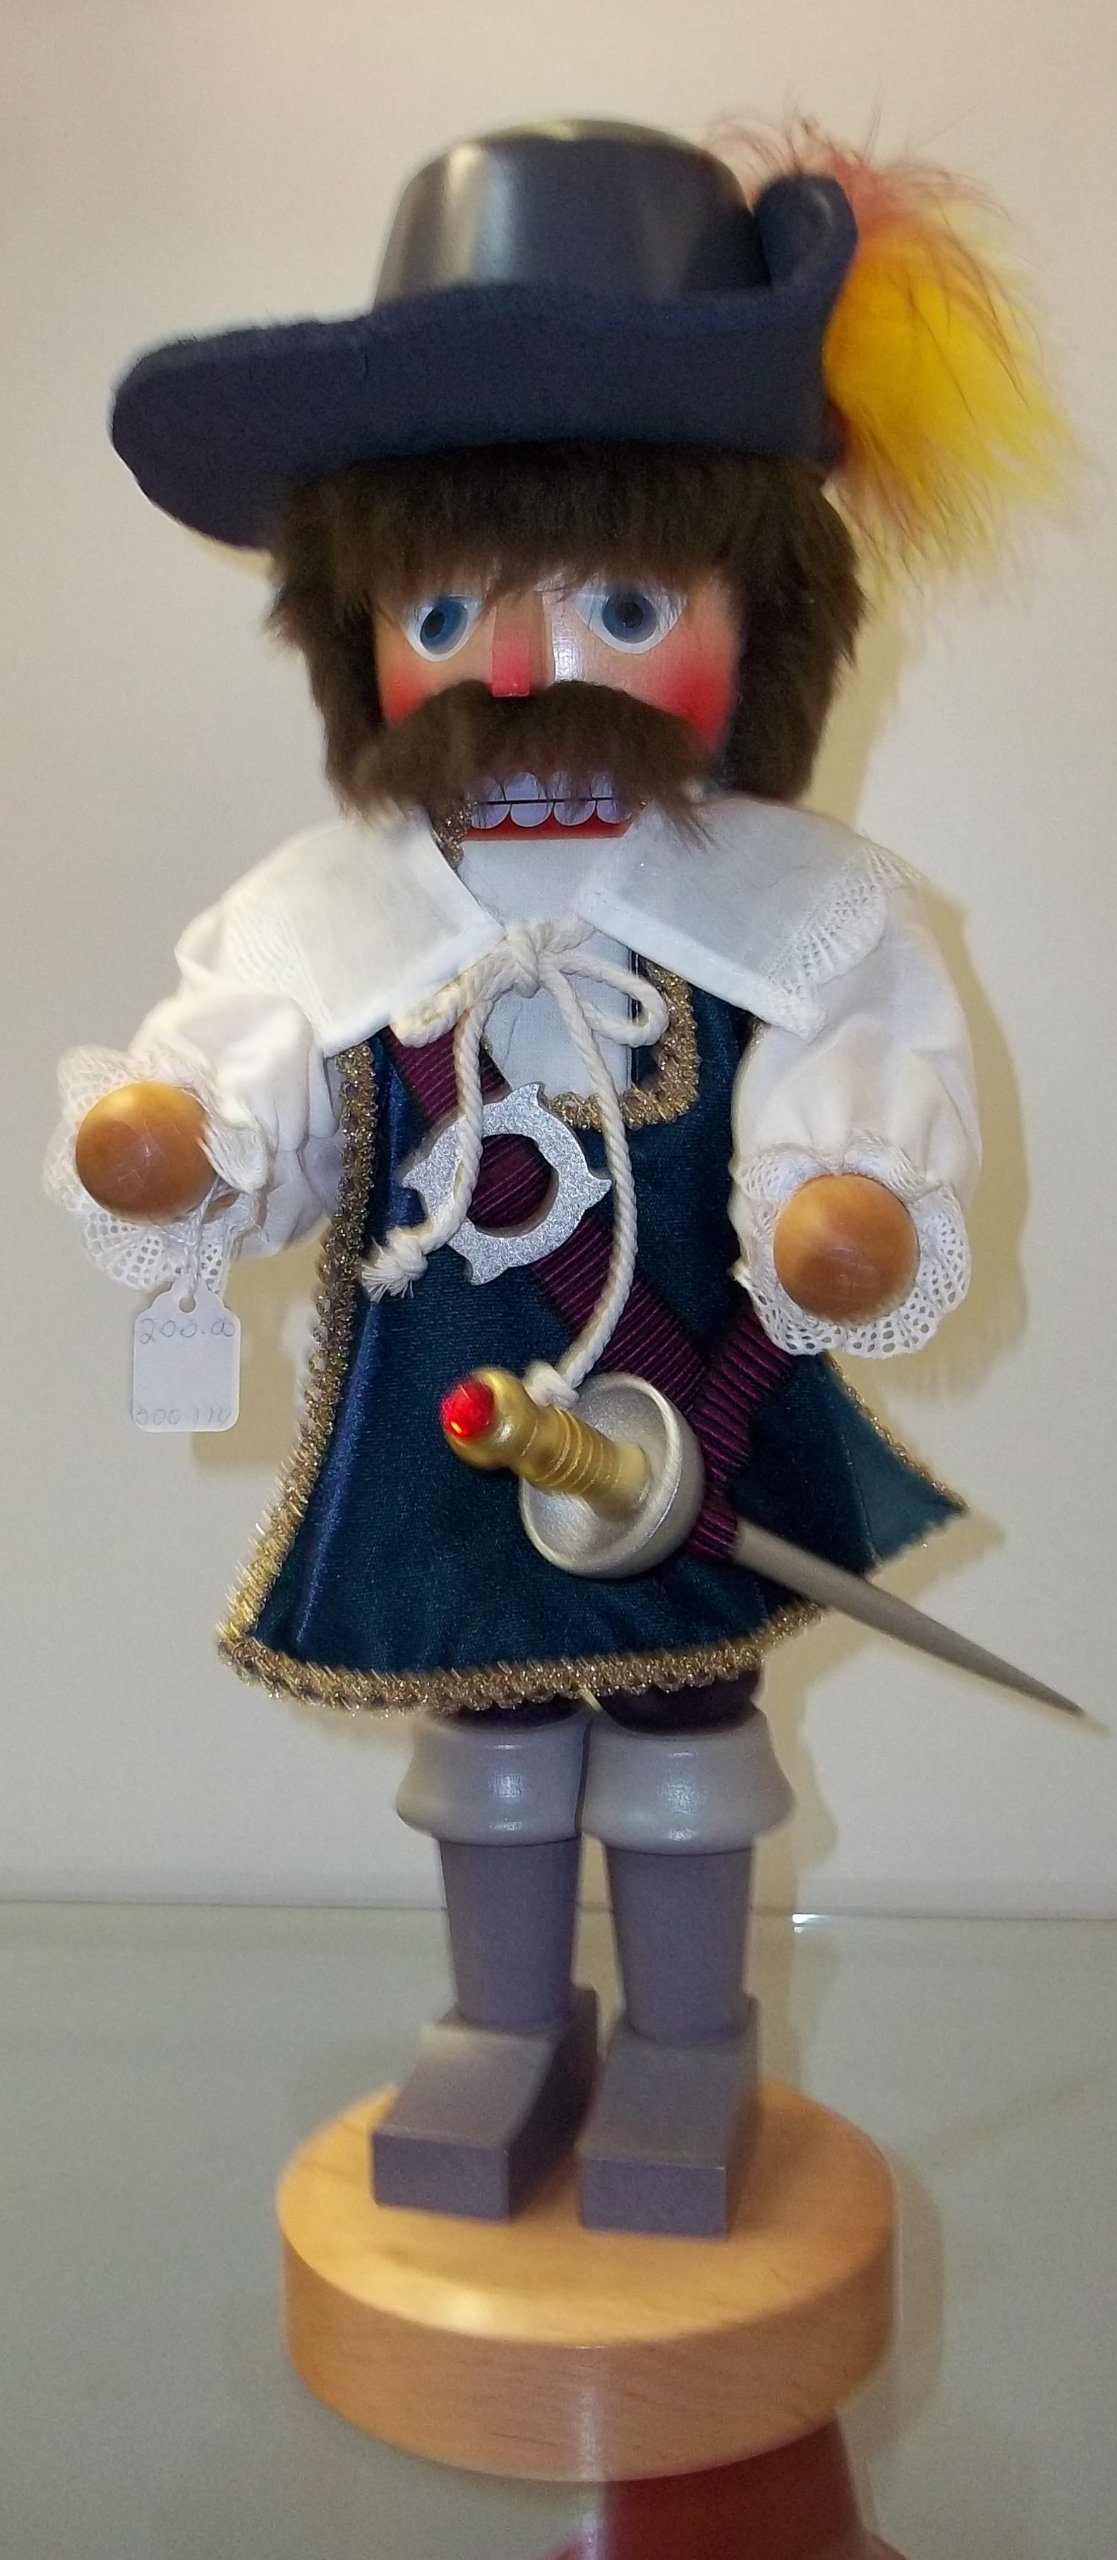 Christian Ulbricht Musketeer Nutcracker by Ulbricht